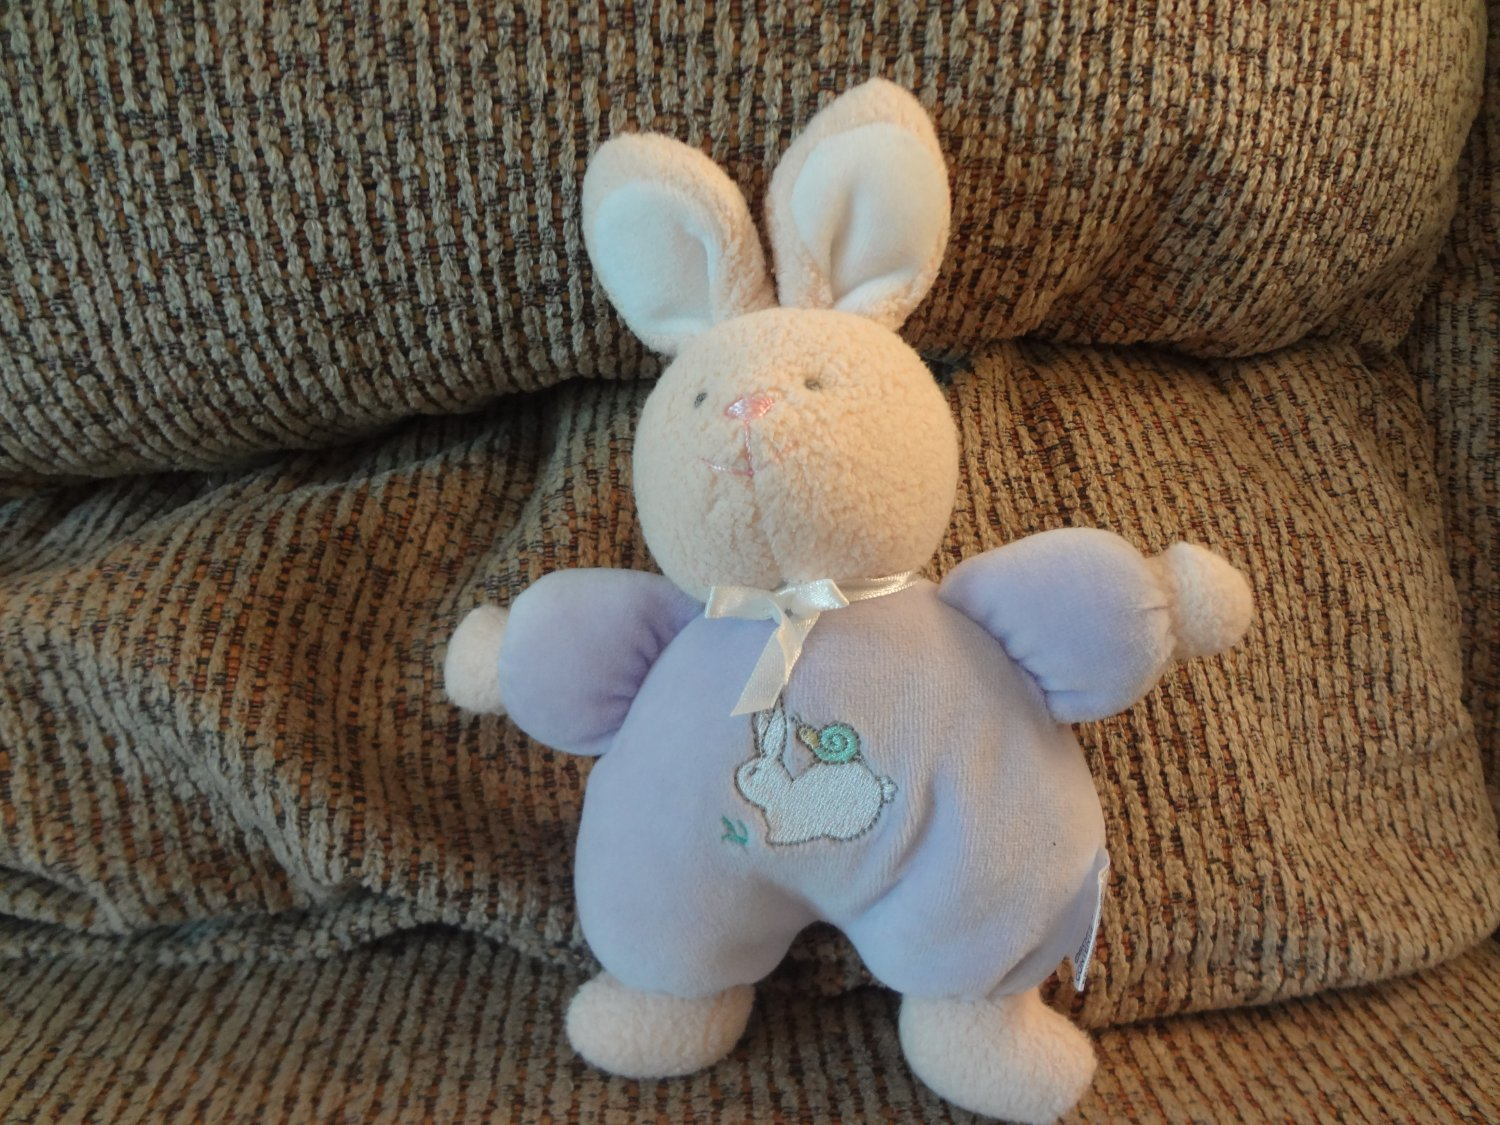 Soft Dreams #4005 Rattles Bunny Snail Lavender Pink Bunny Rabbit Lovey Plush 9""